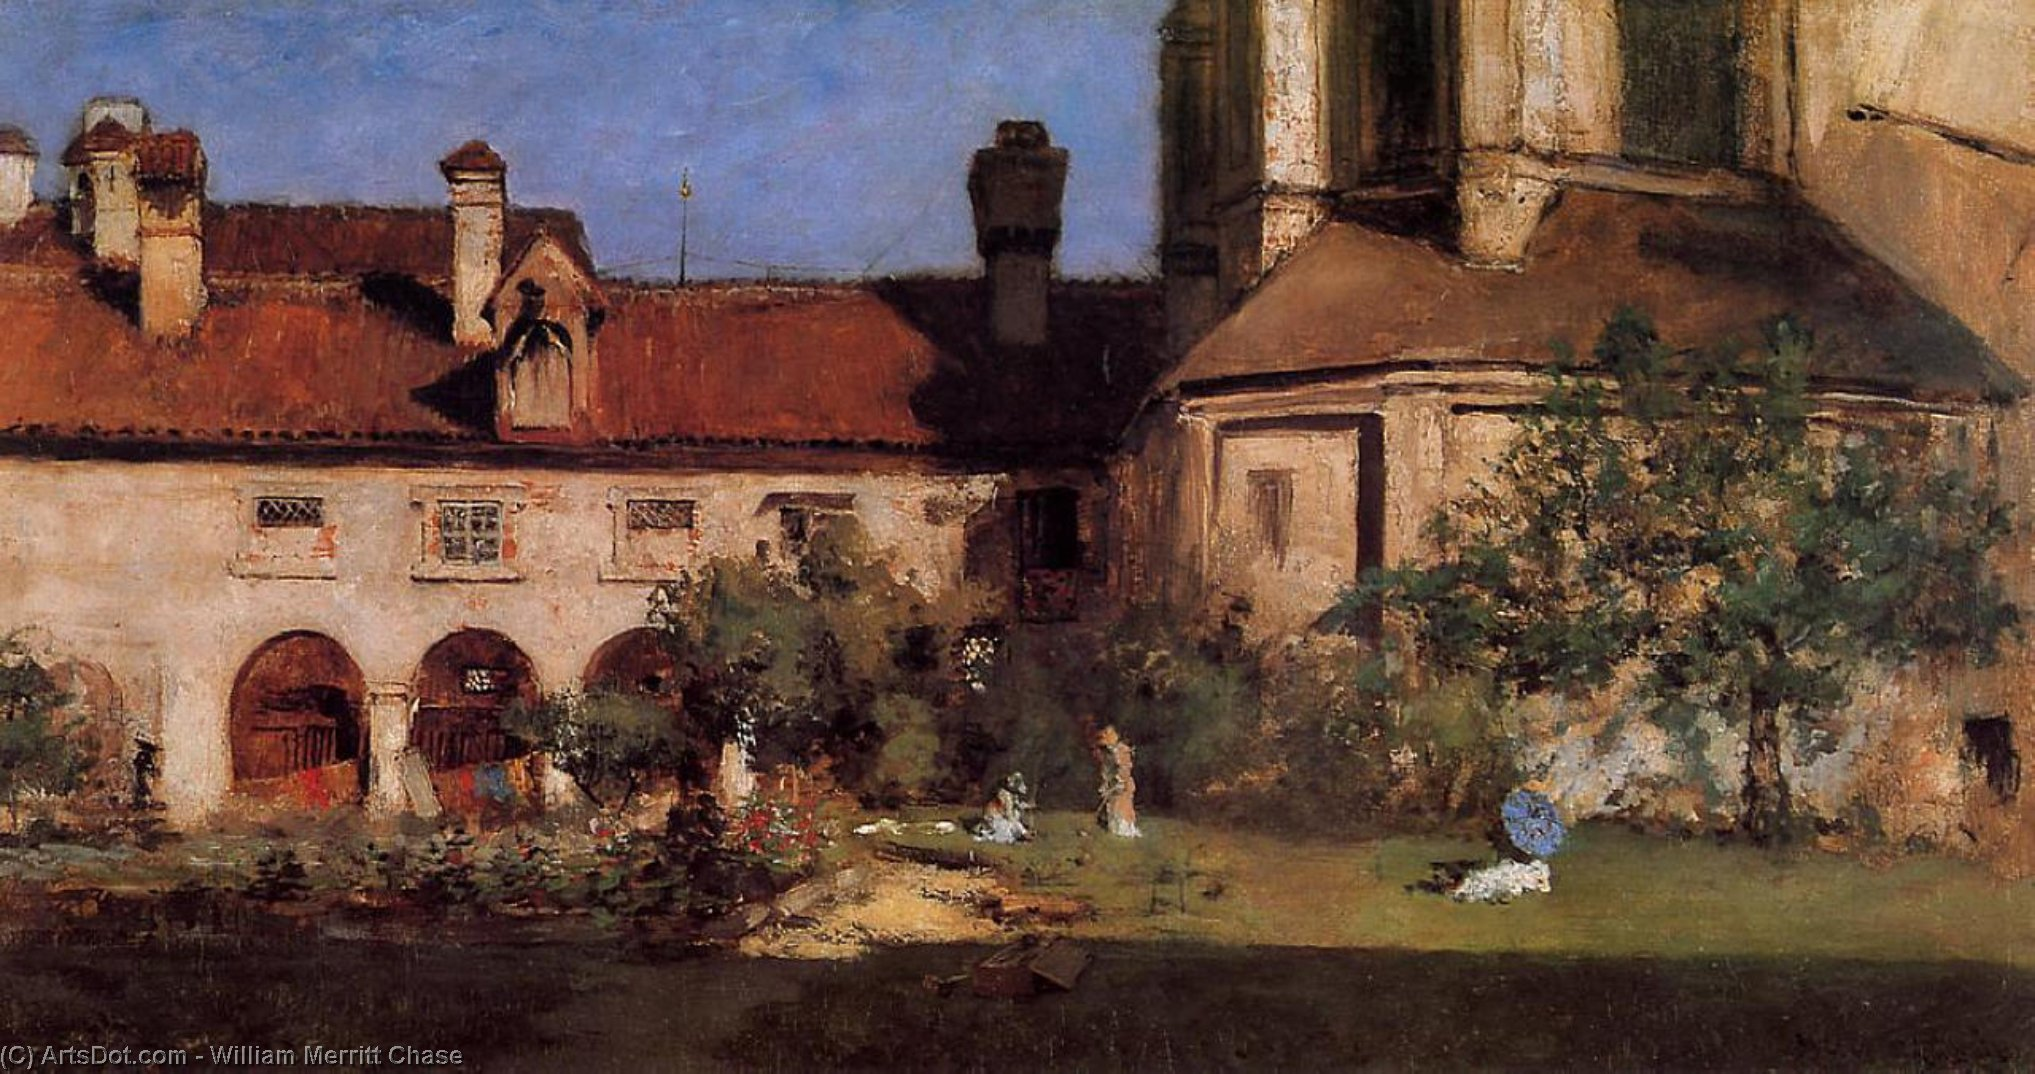 la des cloîtres , 1880 de William Merritt Chase (1849-1916, United States)